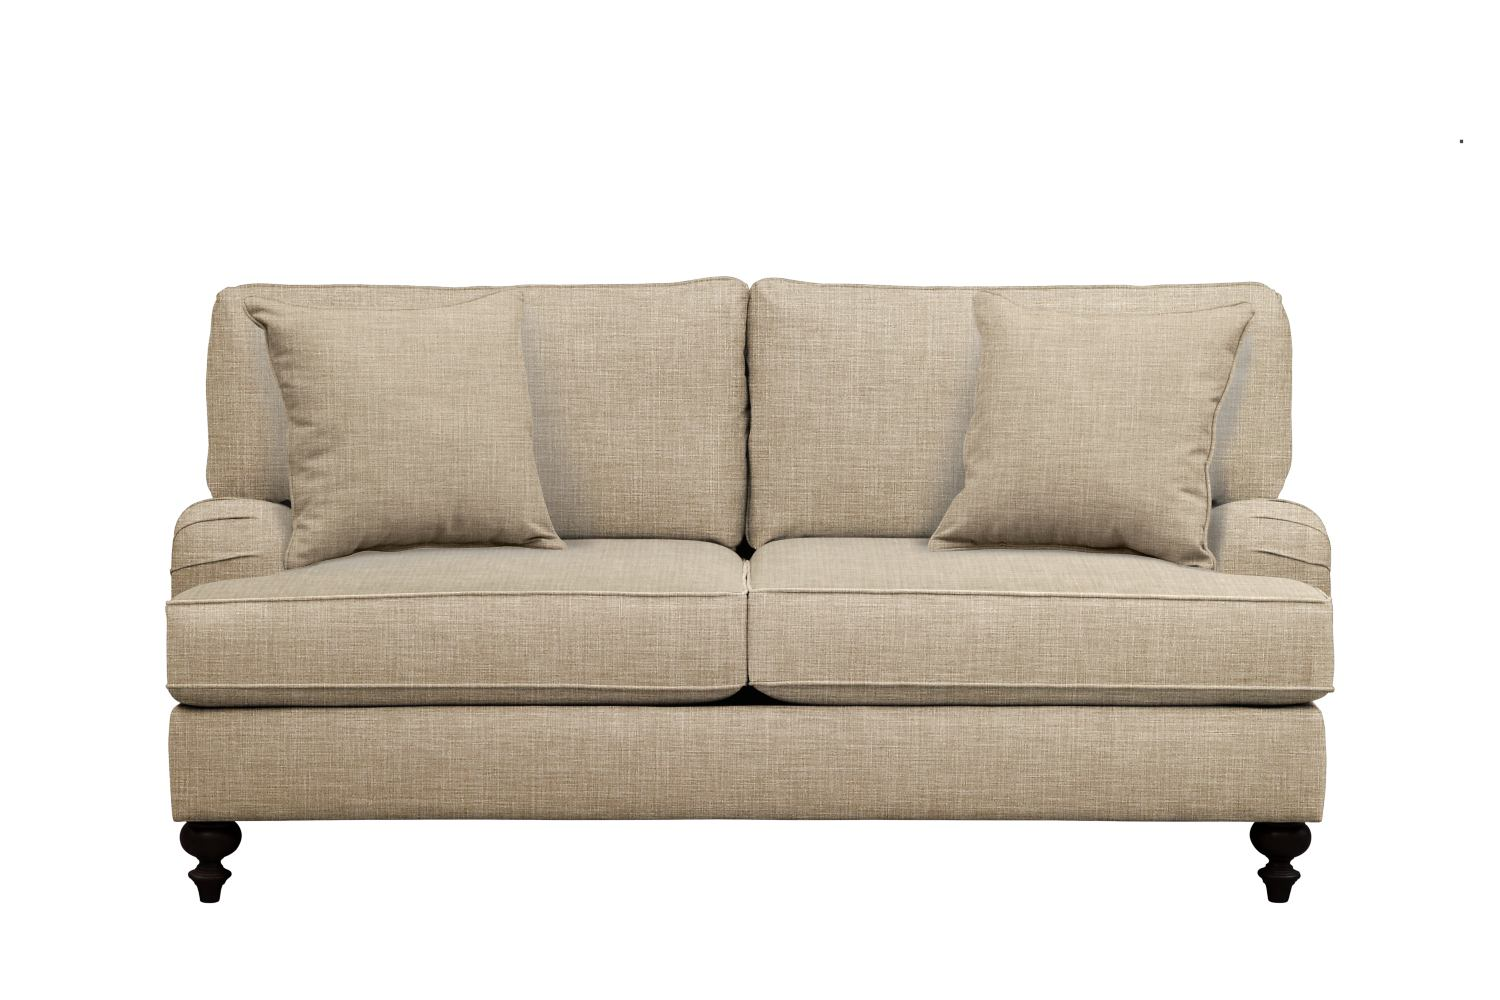 Avery english arm sofa 74quot milford ii toast w milford ii for Sofa vs couch english